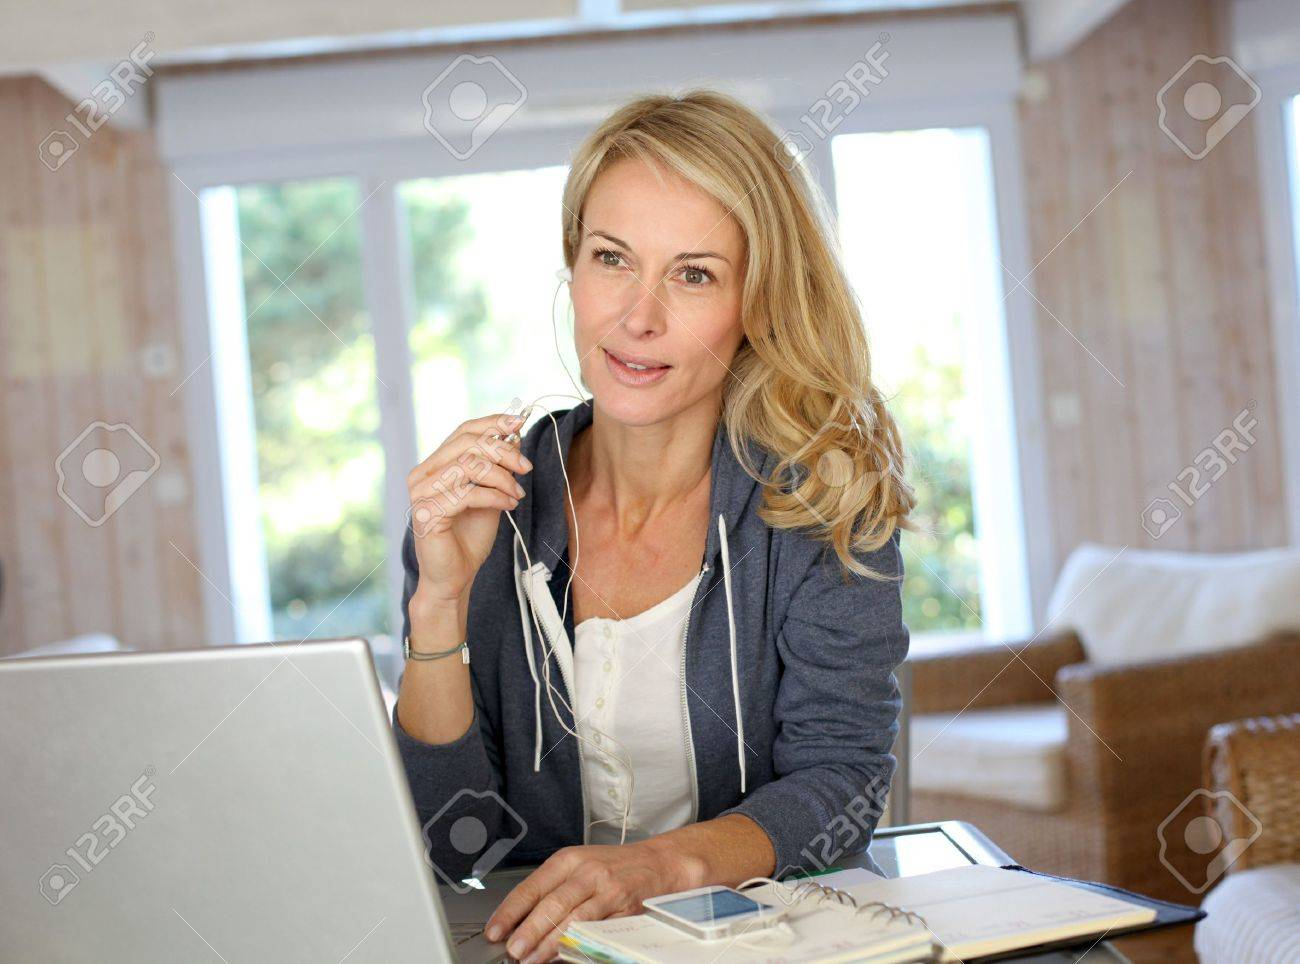 Attractive middle-aged woman working at home Stock Photo - 13904590